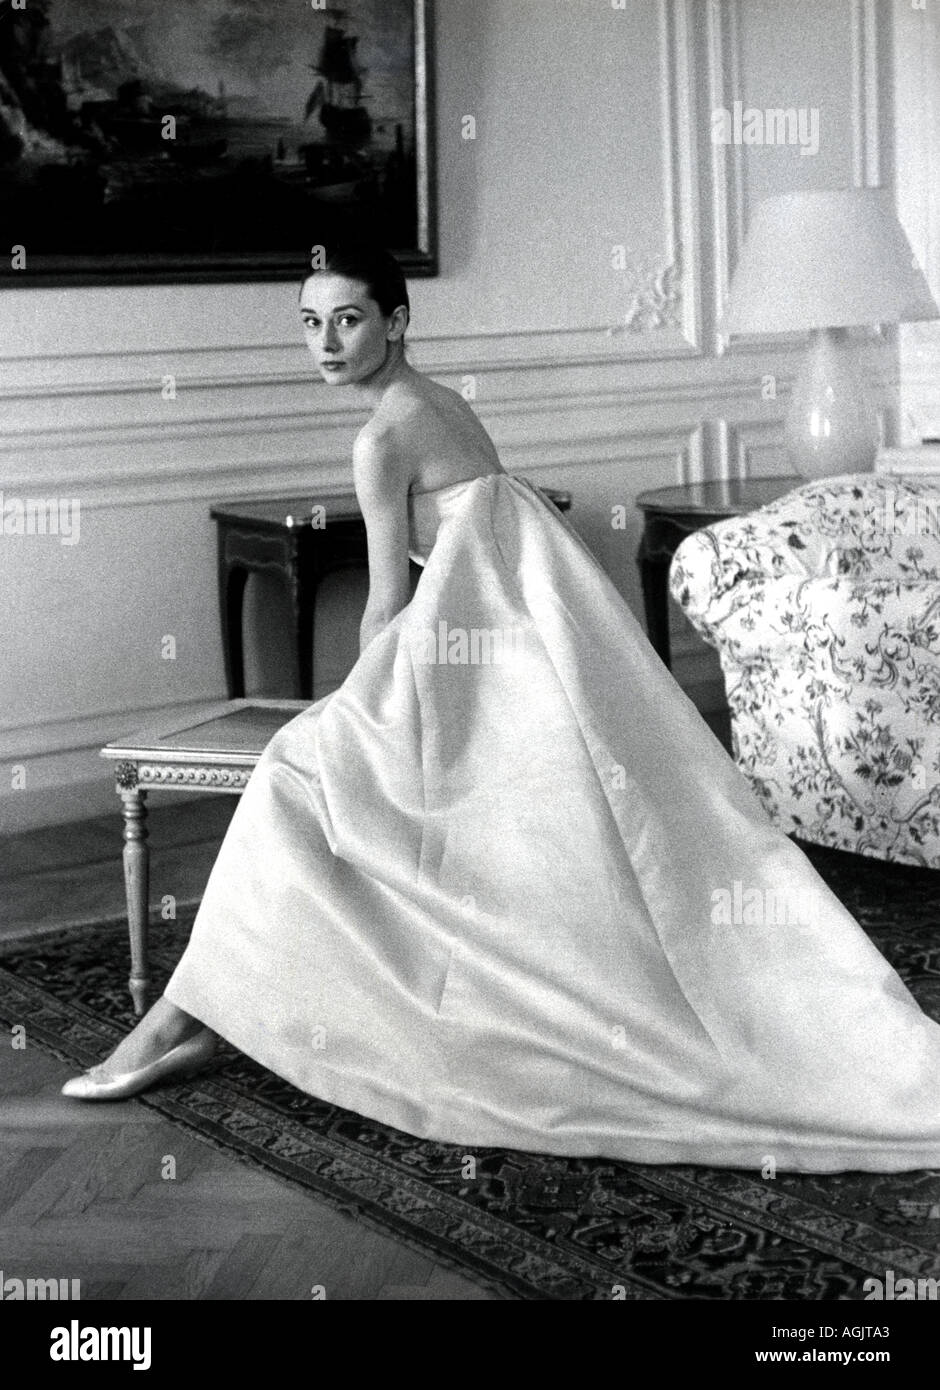 AUDREY HEPBURN film actress at the Givenchy fashion salon in Paris in the 1960s - Stock Image